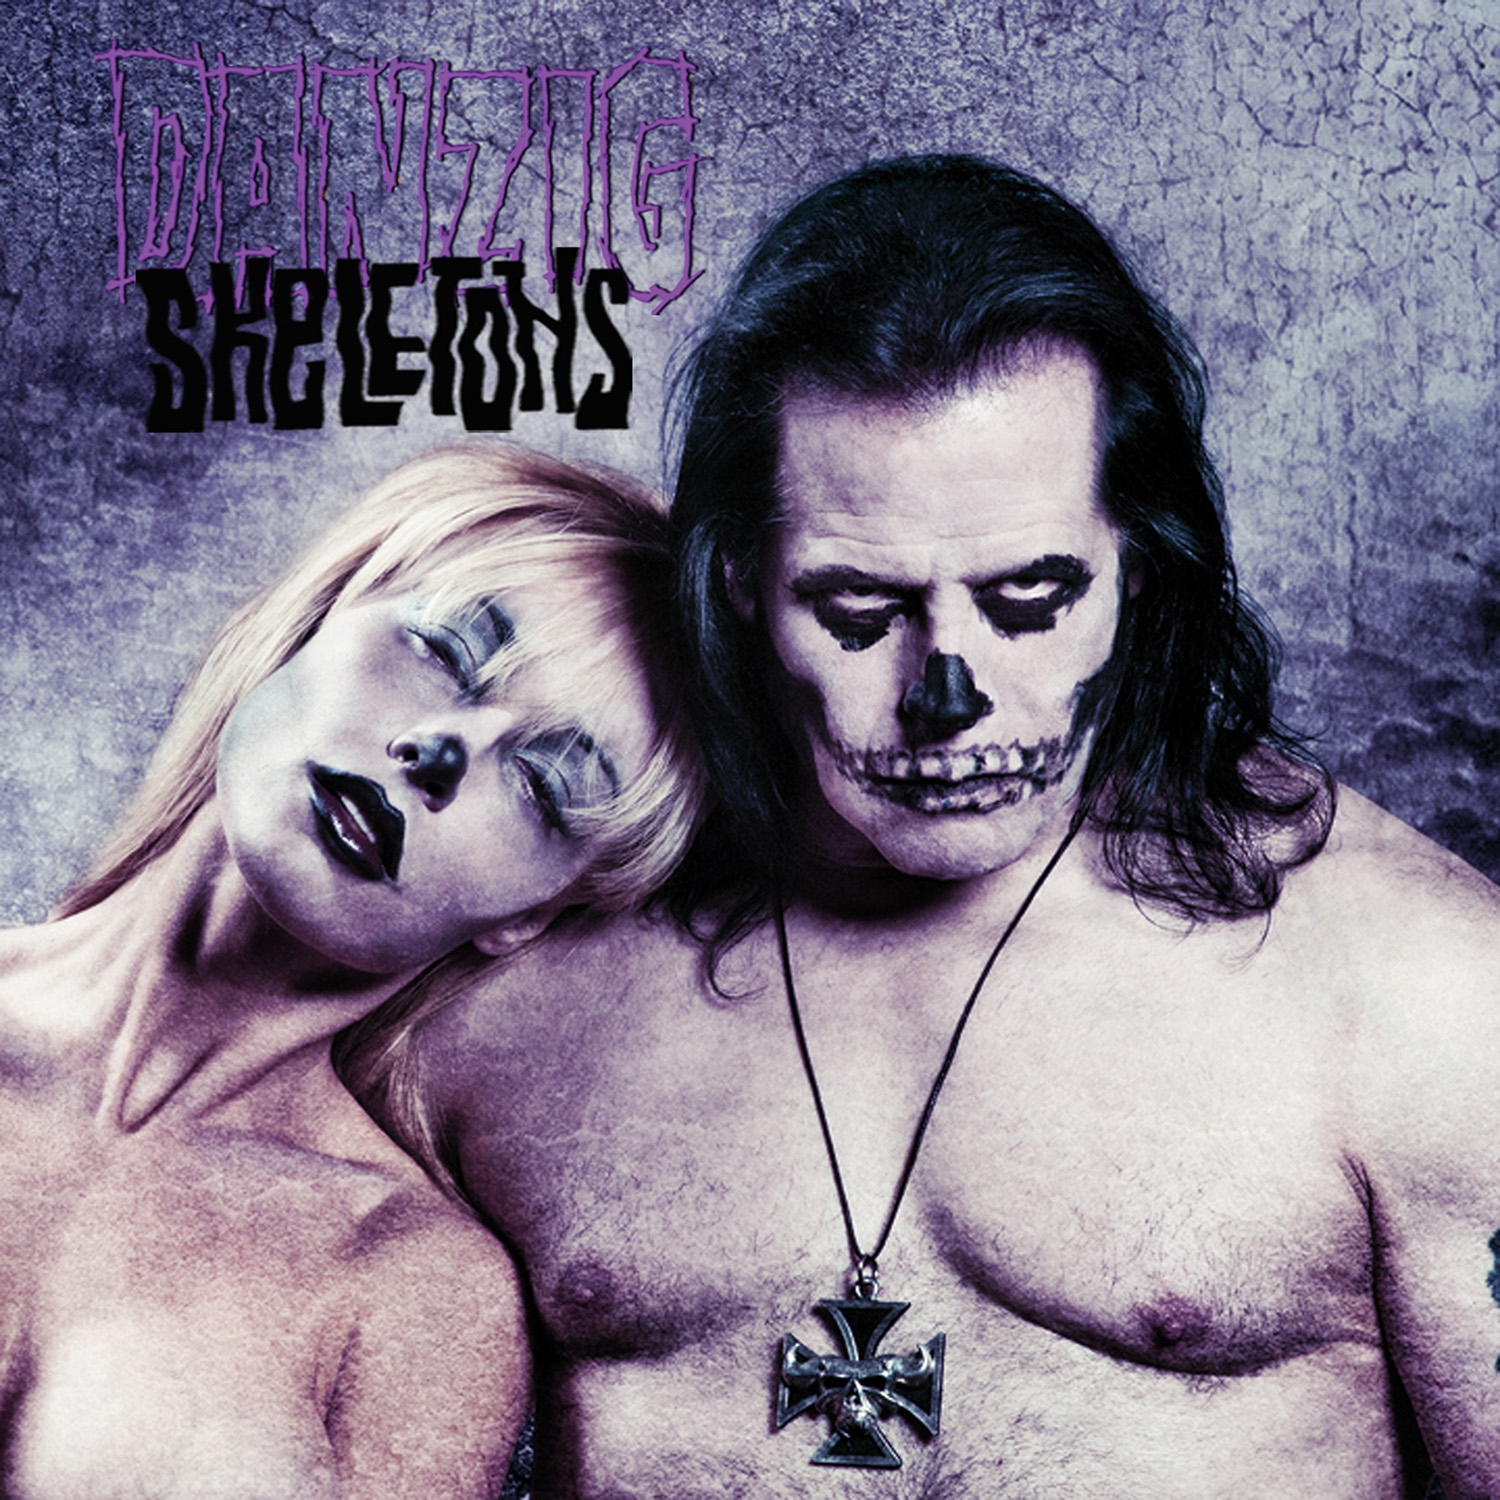 Danzig - Skeletons - Artwork